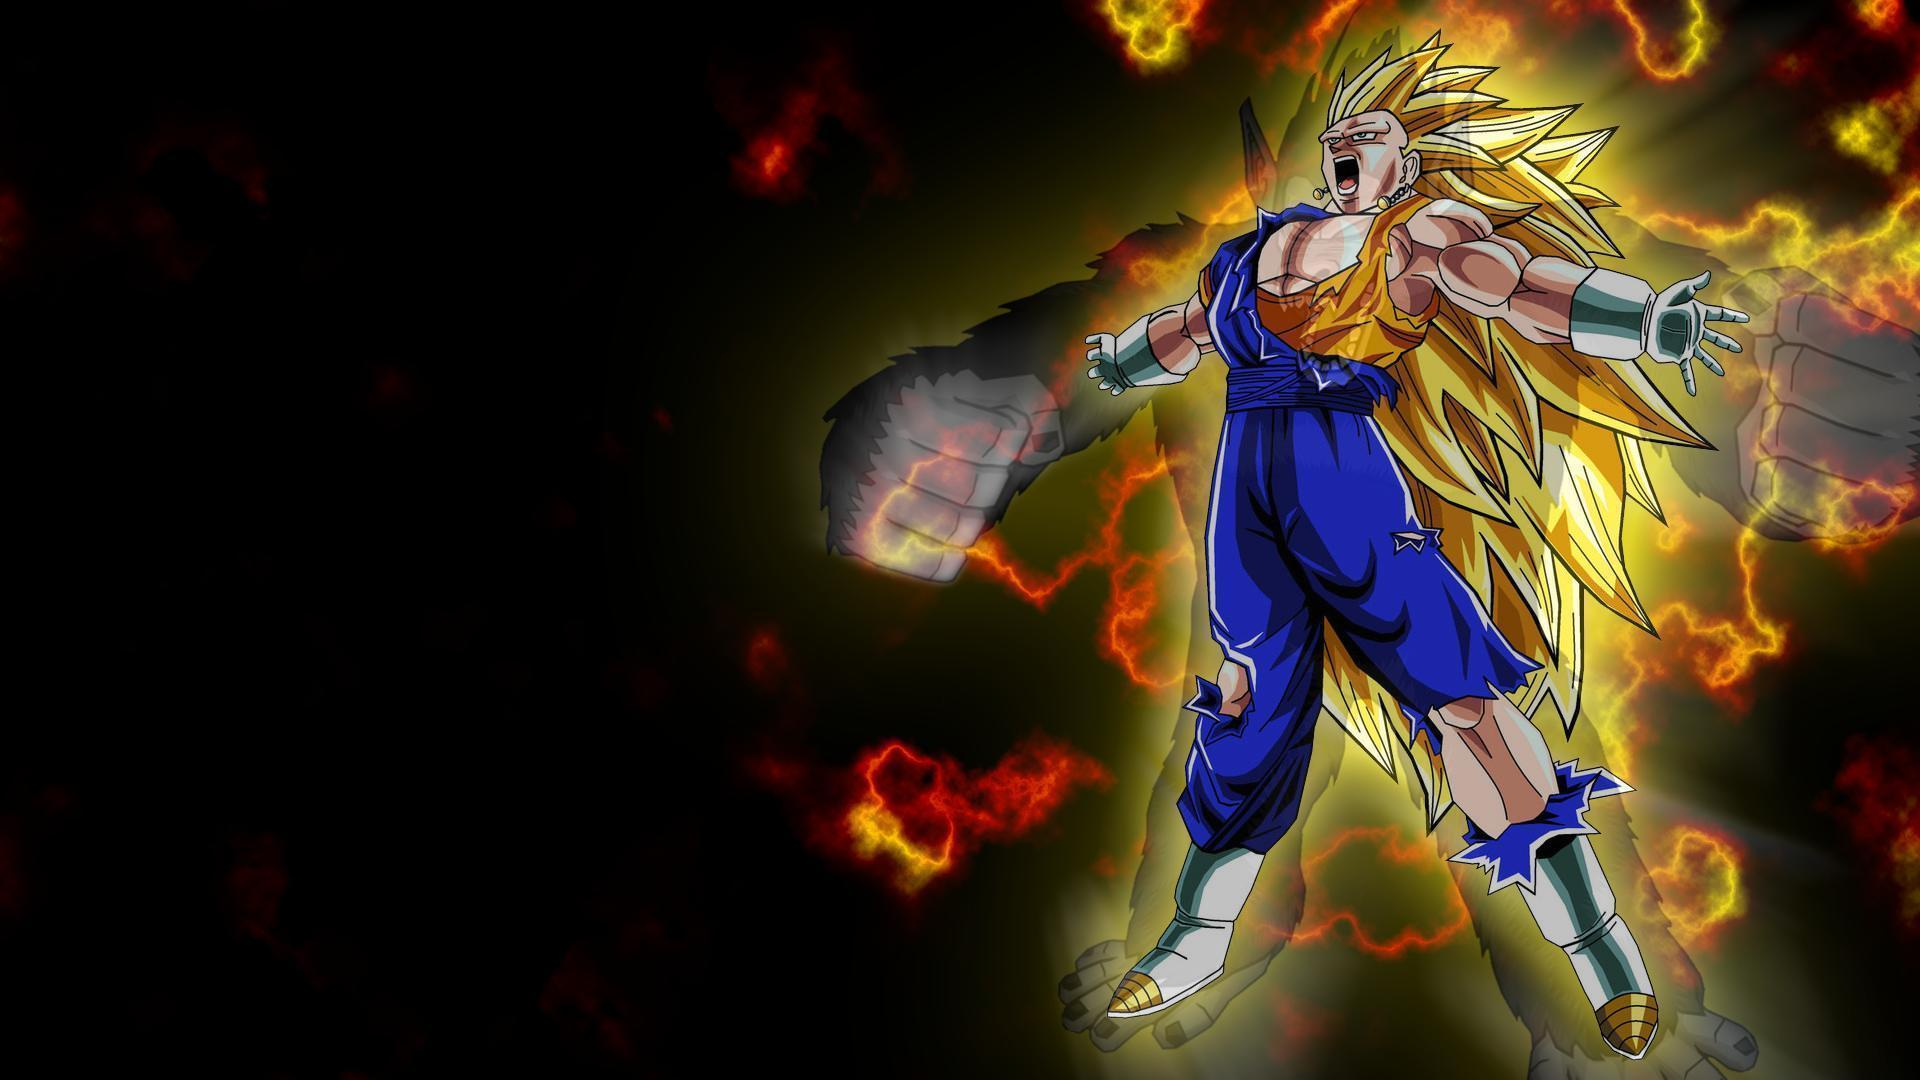 Dragon Ball Z Goku Super Saiyan 3 Wallpaper 30055 Arkpaint